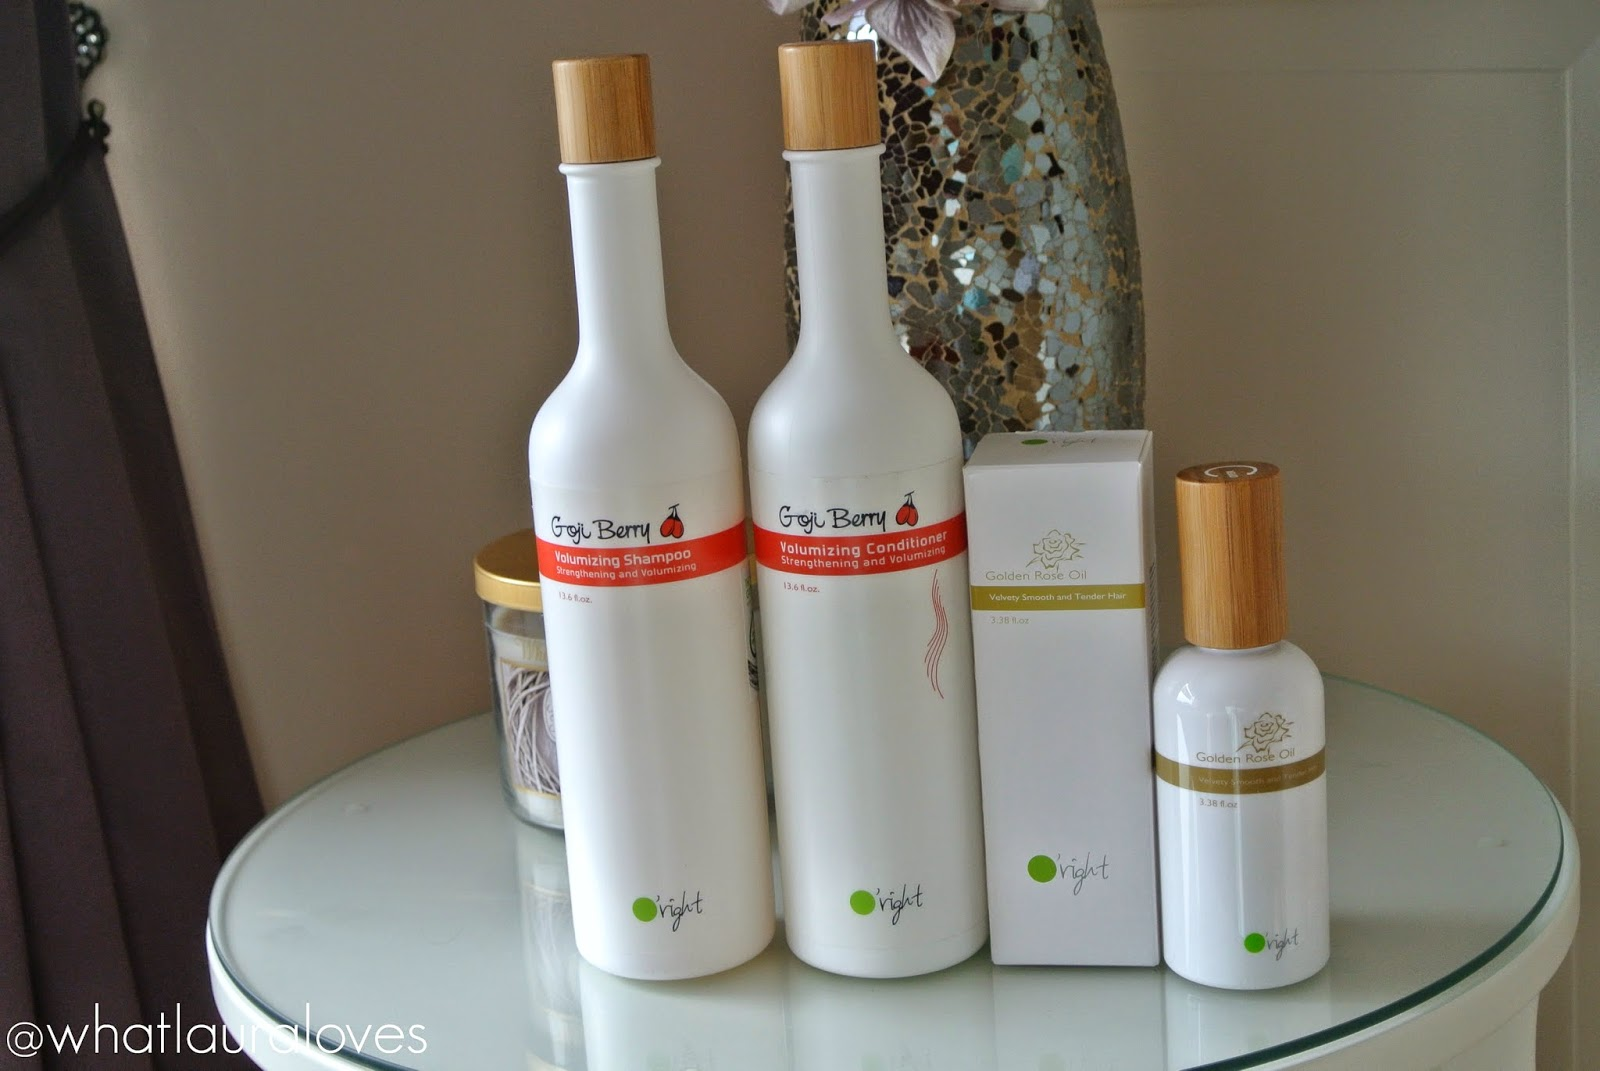 O'Right Goji Berry Volumizing Shampoo Conditioner and Hair Oil